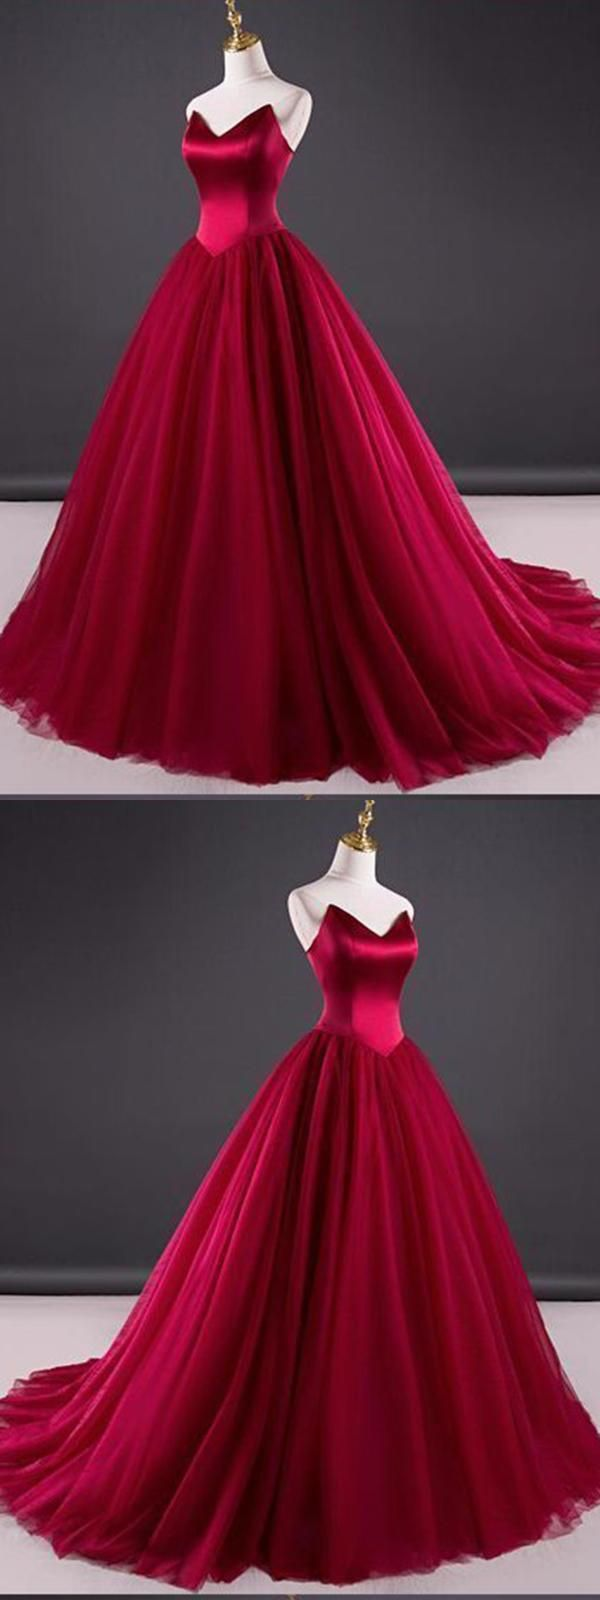 Fetching modest prom dresses prom dresses for cheap burgundy prom